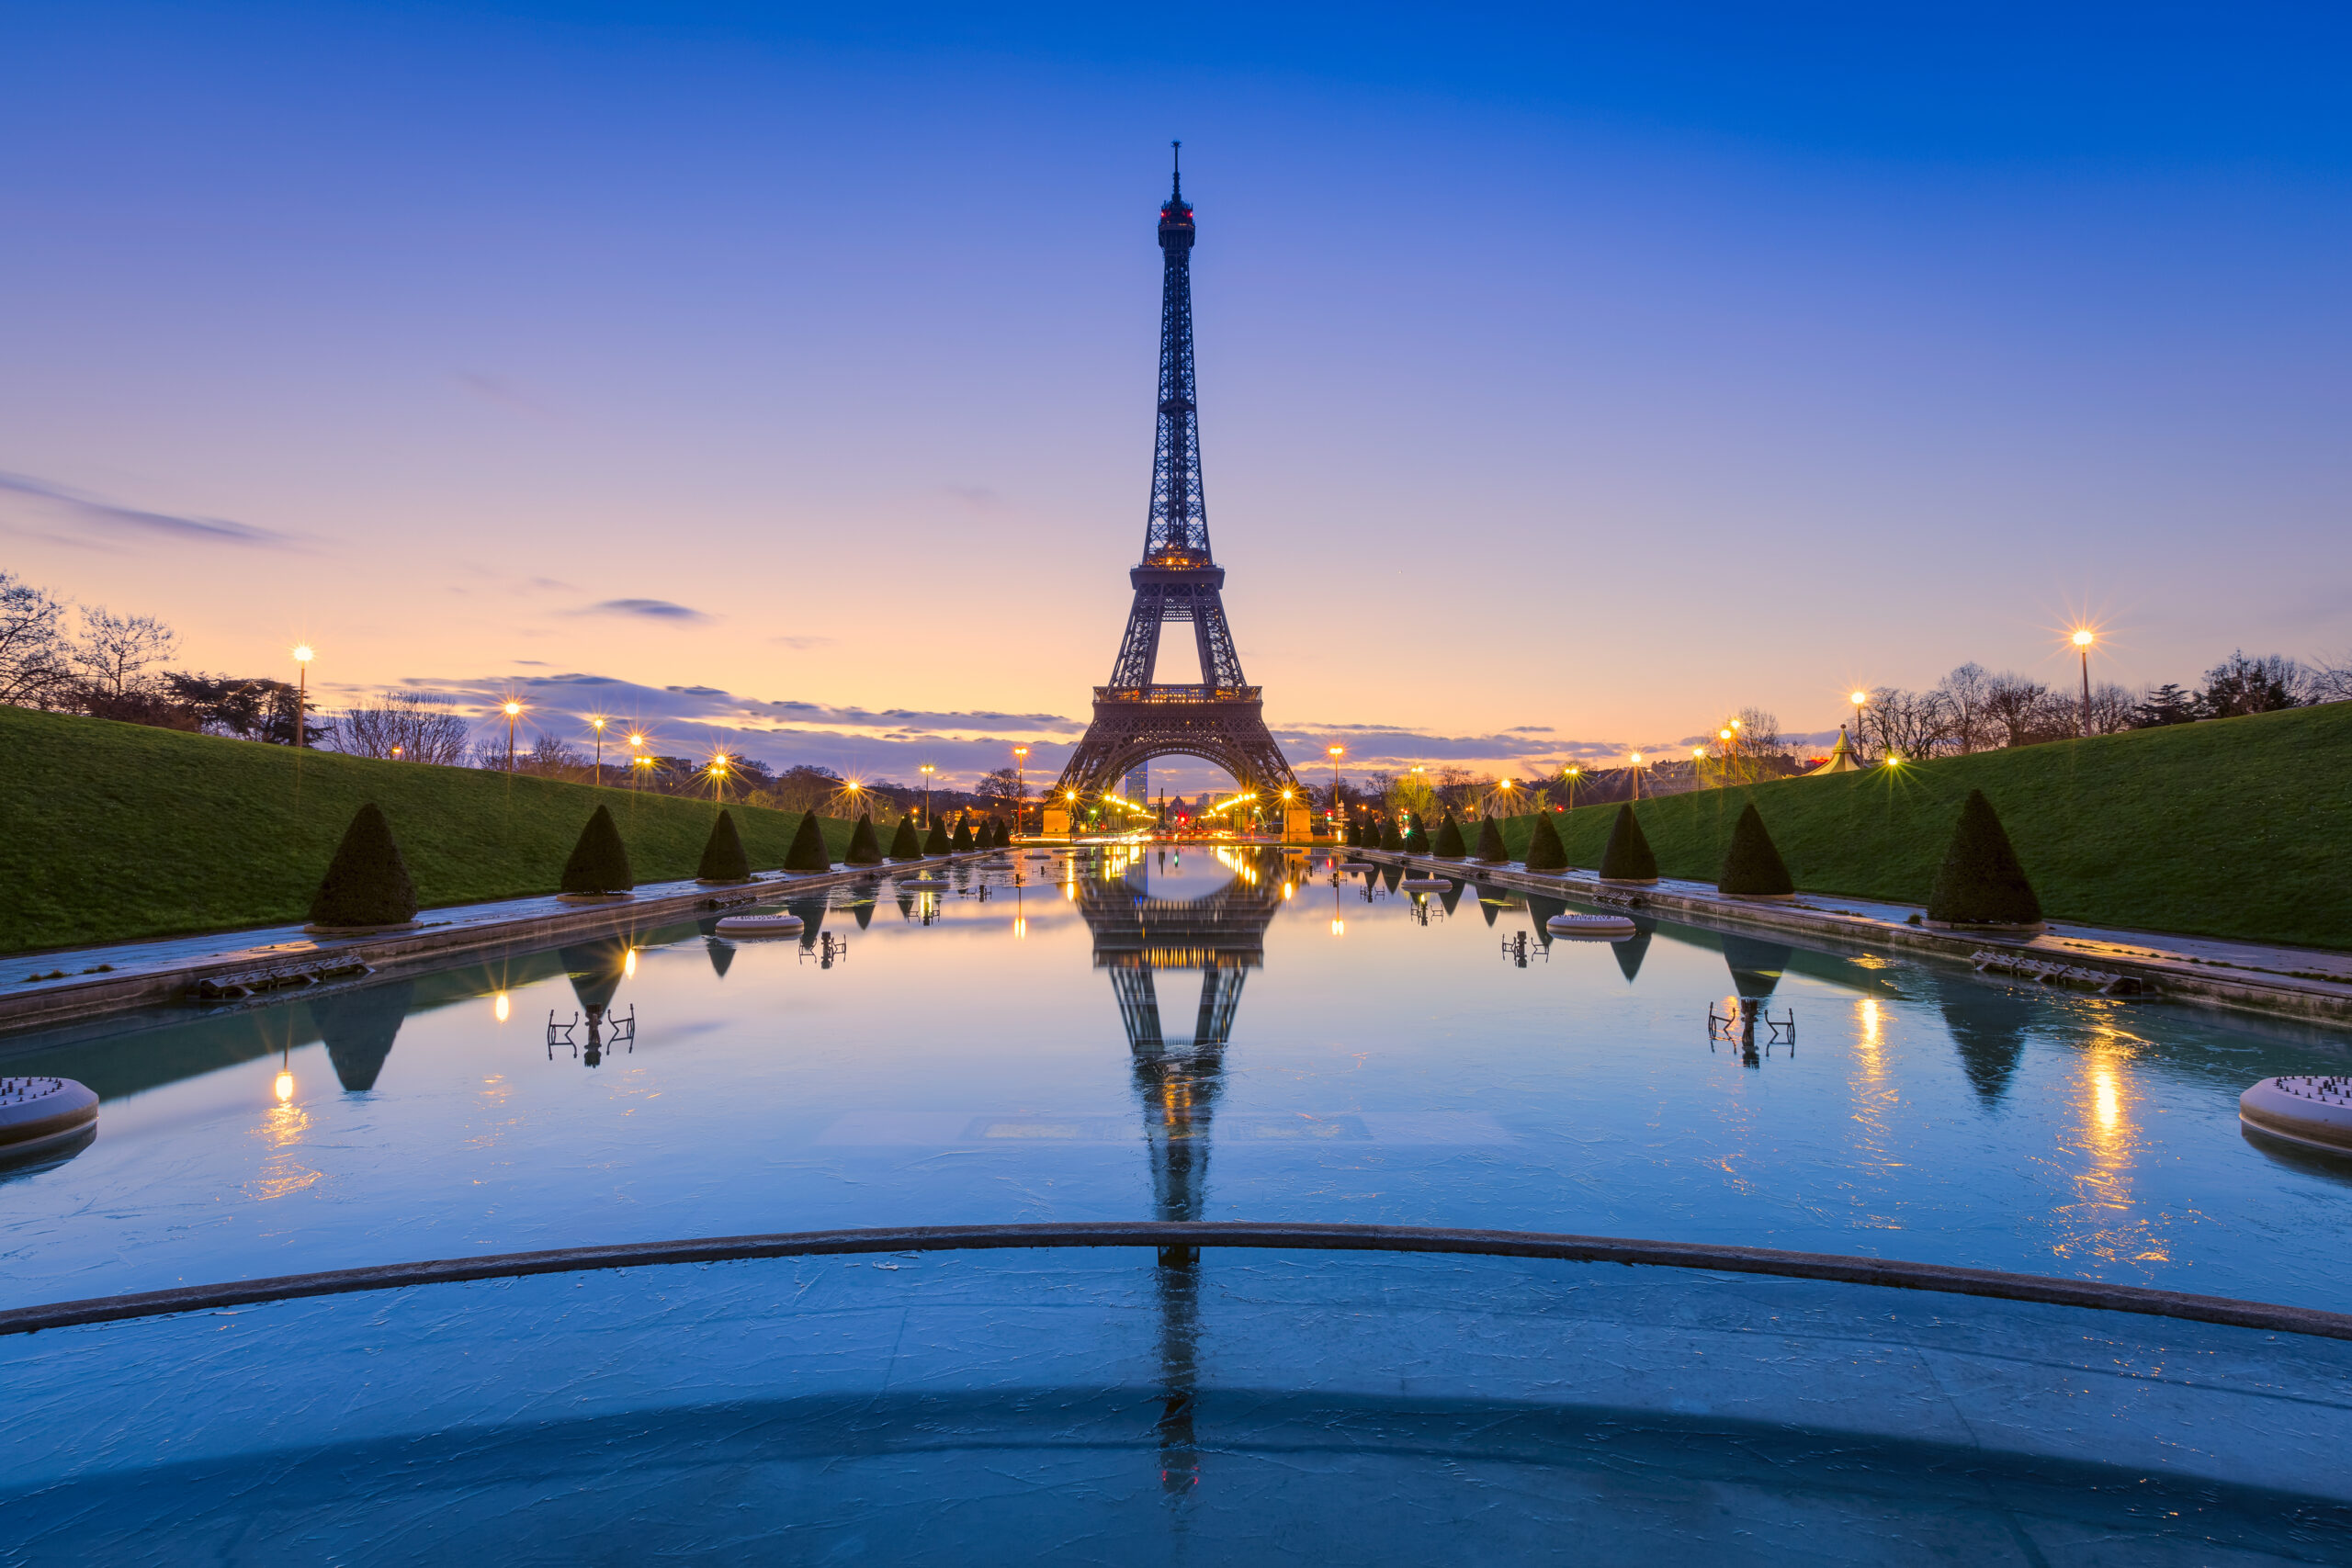 The Eiffel Tower at sunrise from Trocadero.